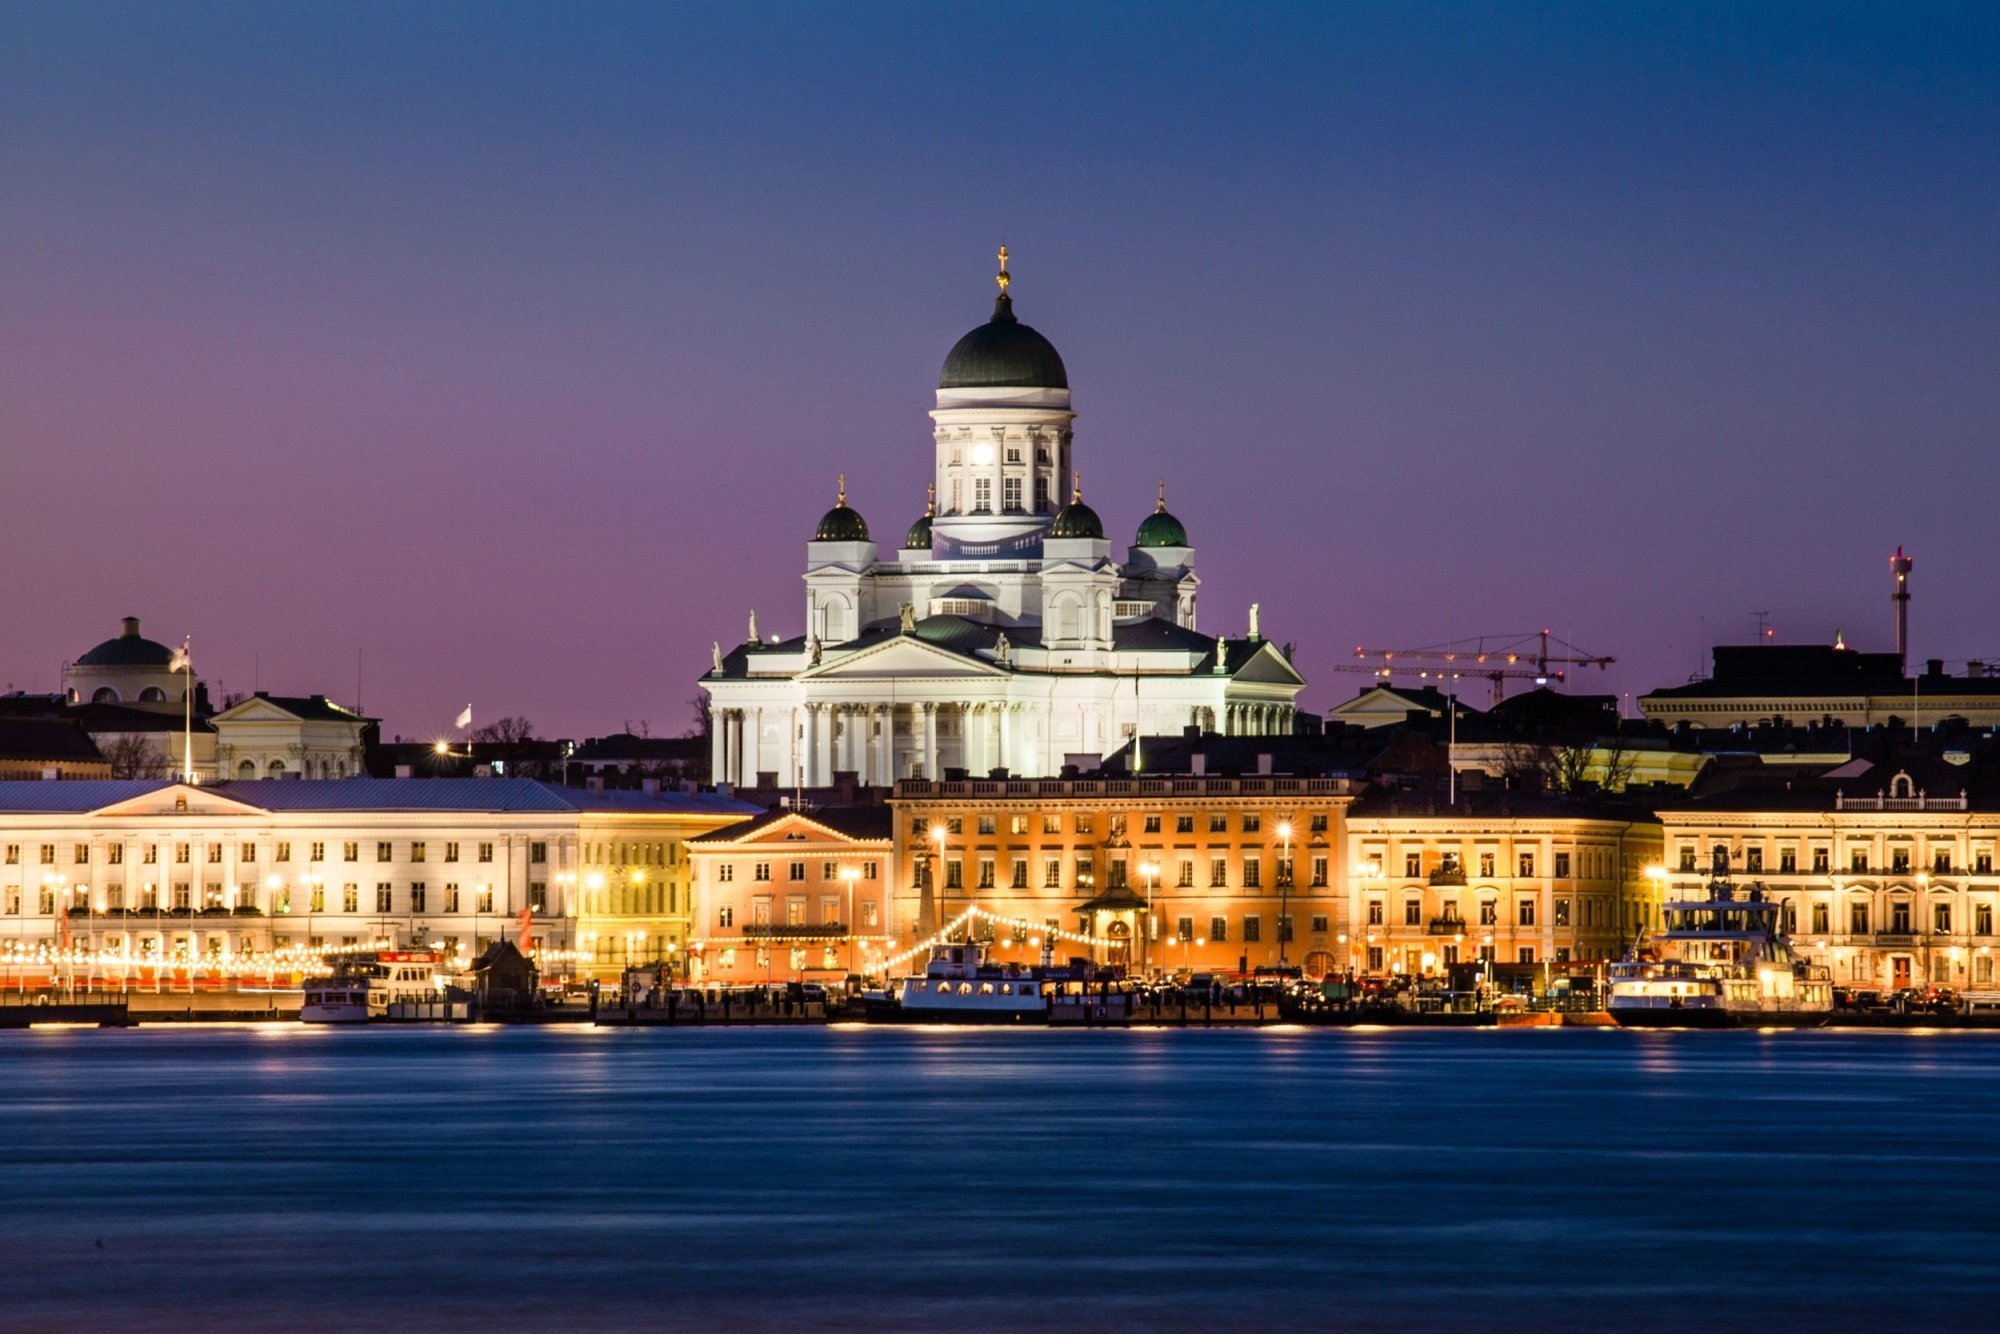 English-Speaking Taxi Price to Helsinki from St Peterburg